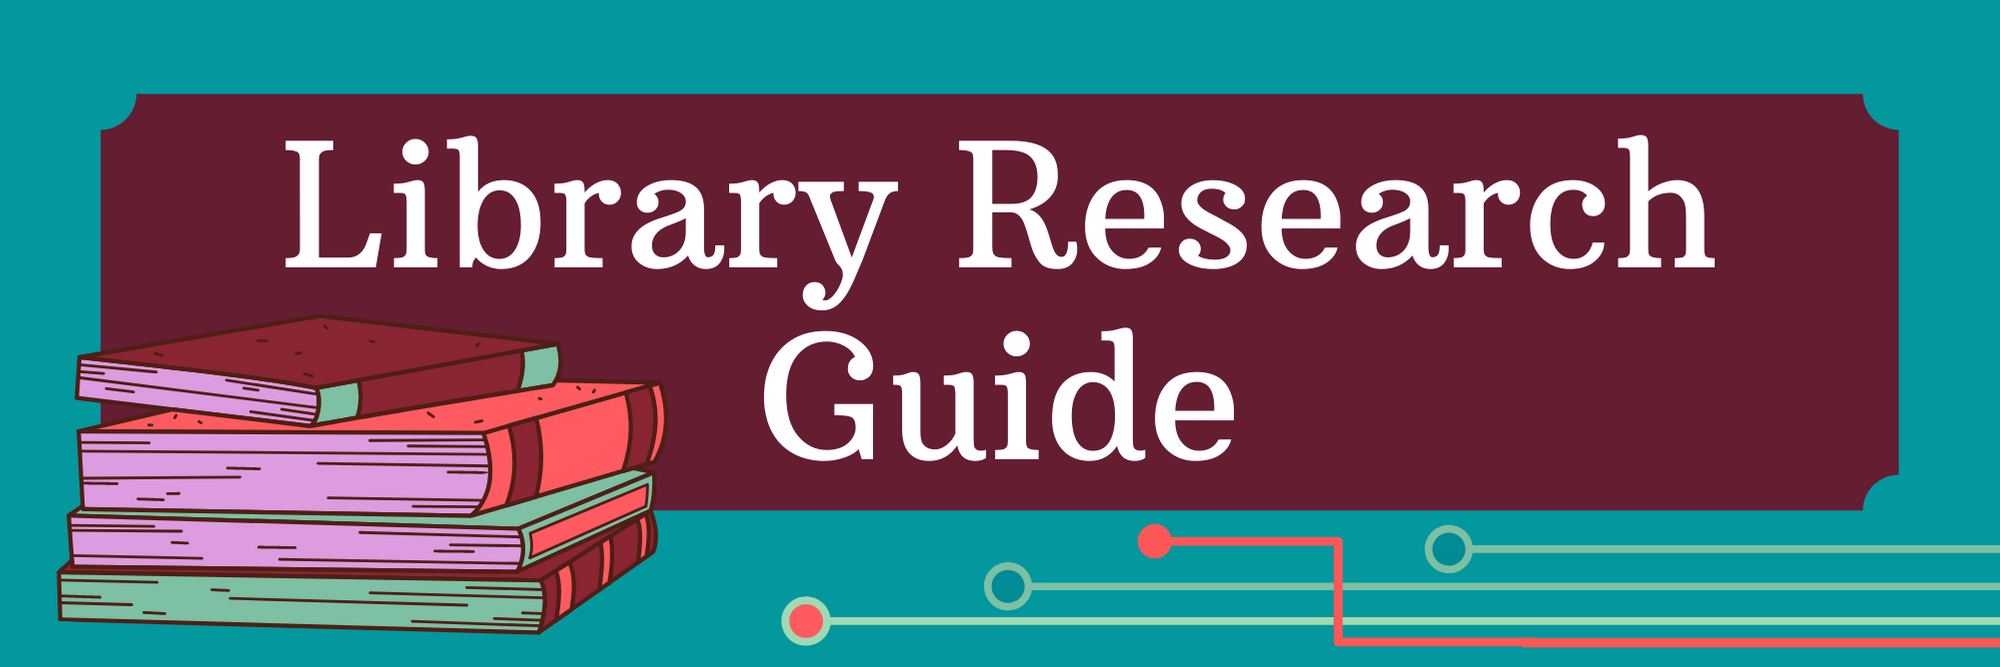 Start your research here!